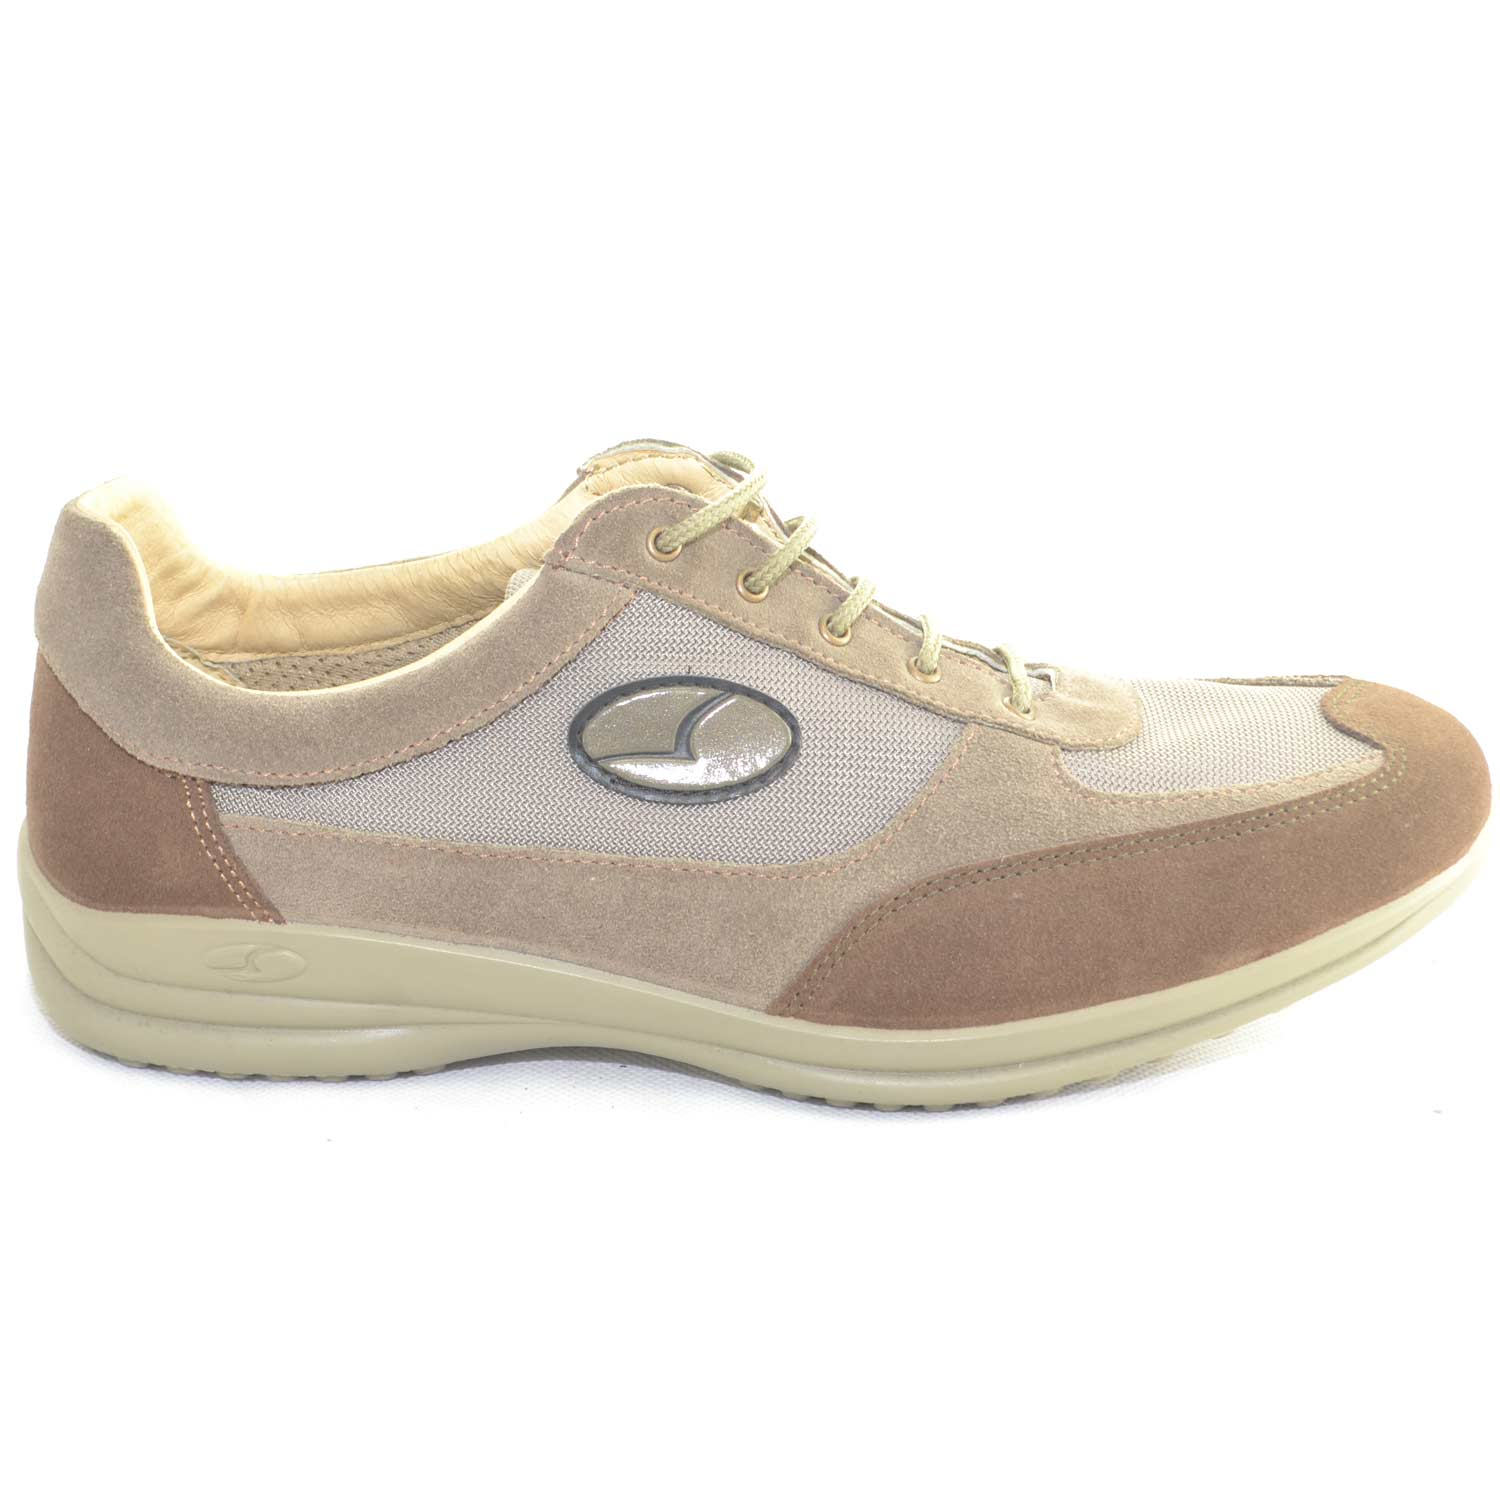 Sneakers Sportive Scarpe beige Uomo Light Step GRISPORT 8123 Made in Italy  Man Shoes comfort tessuto 11647c2f5a9